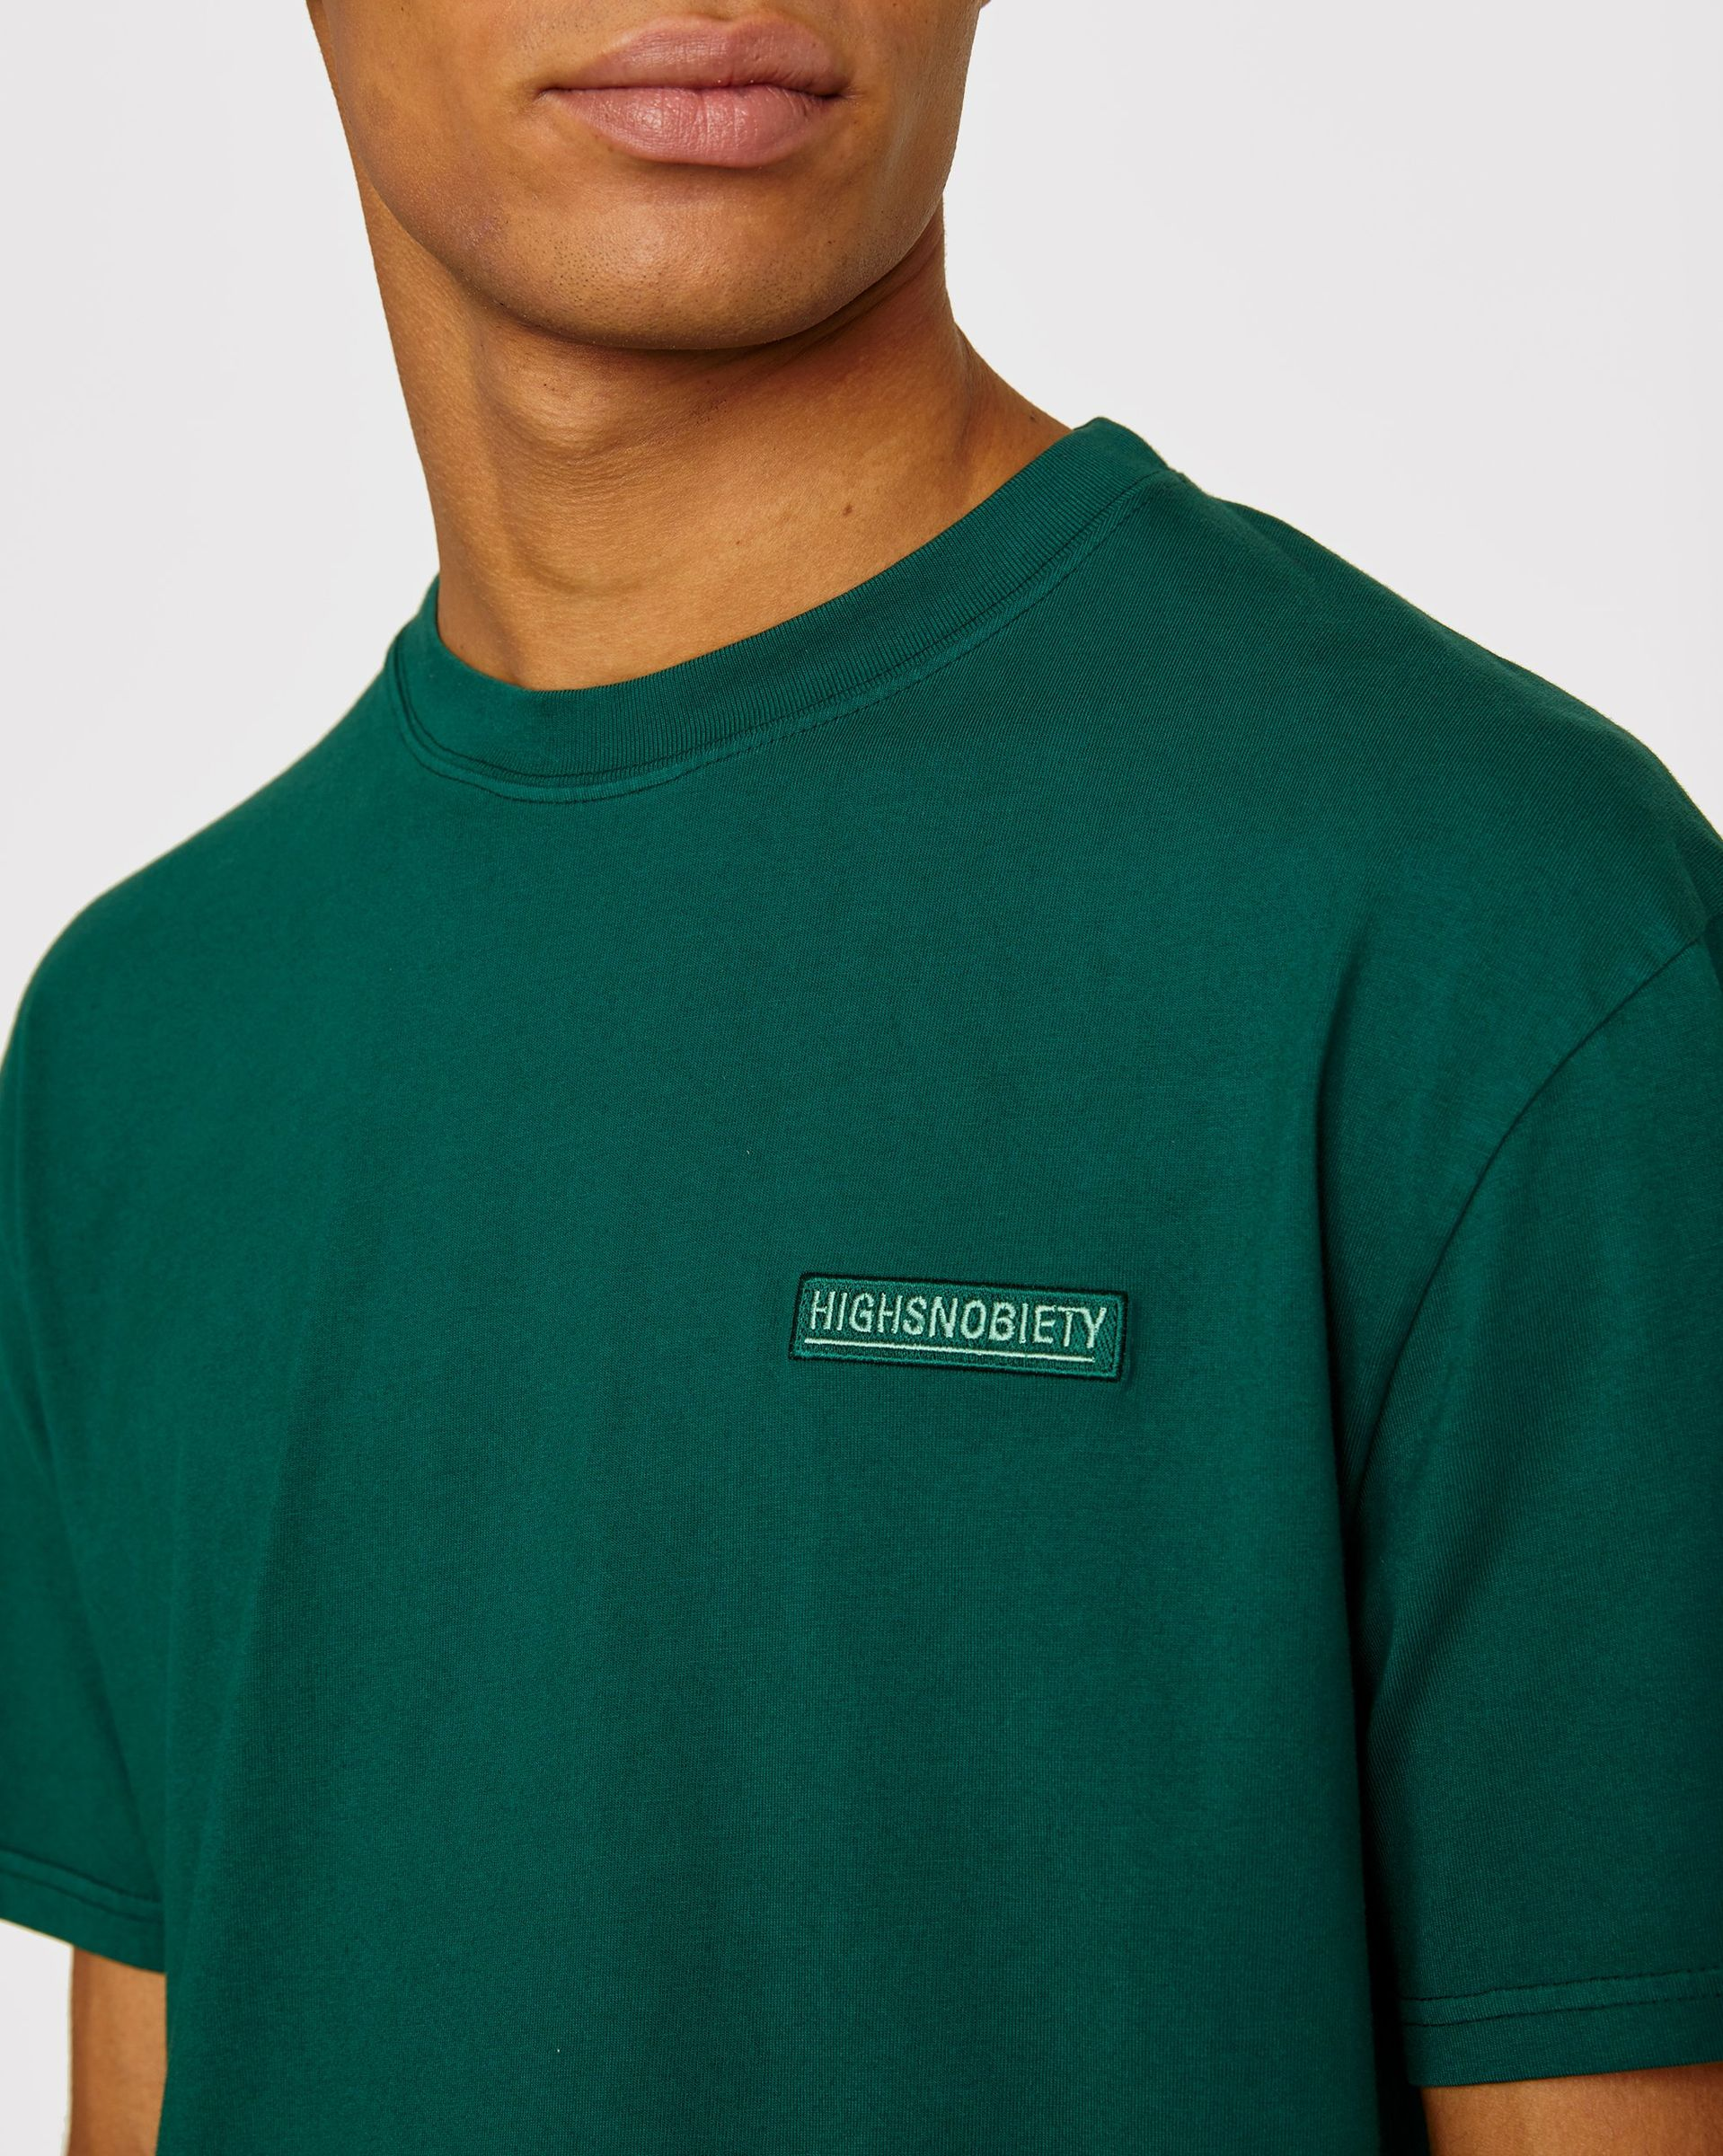 Highsnobiety Staples - T-Shirt Green - Image 5